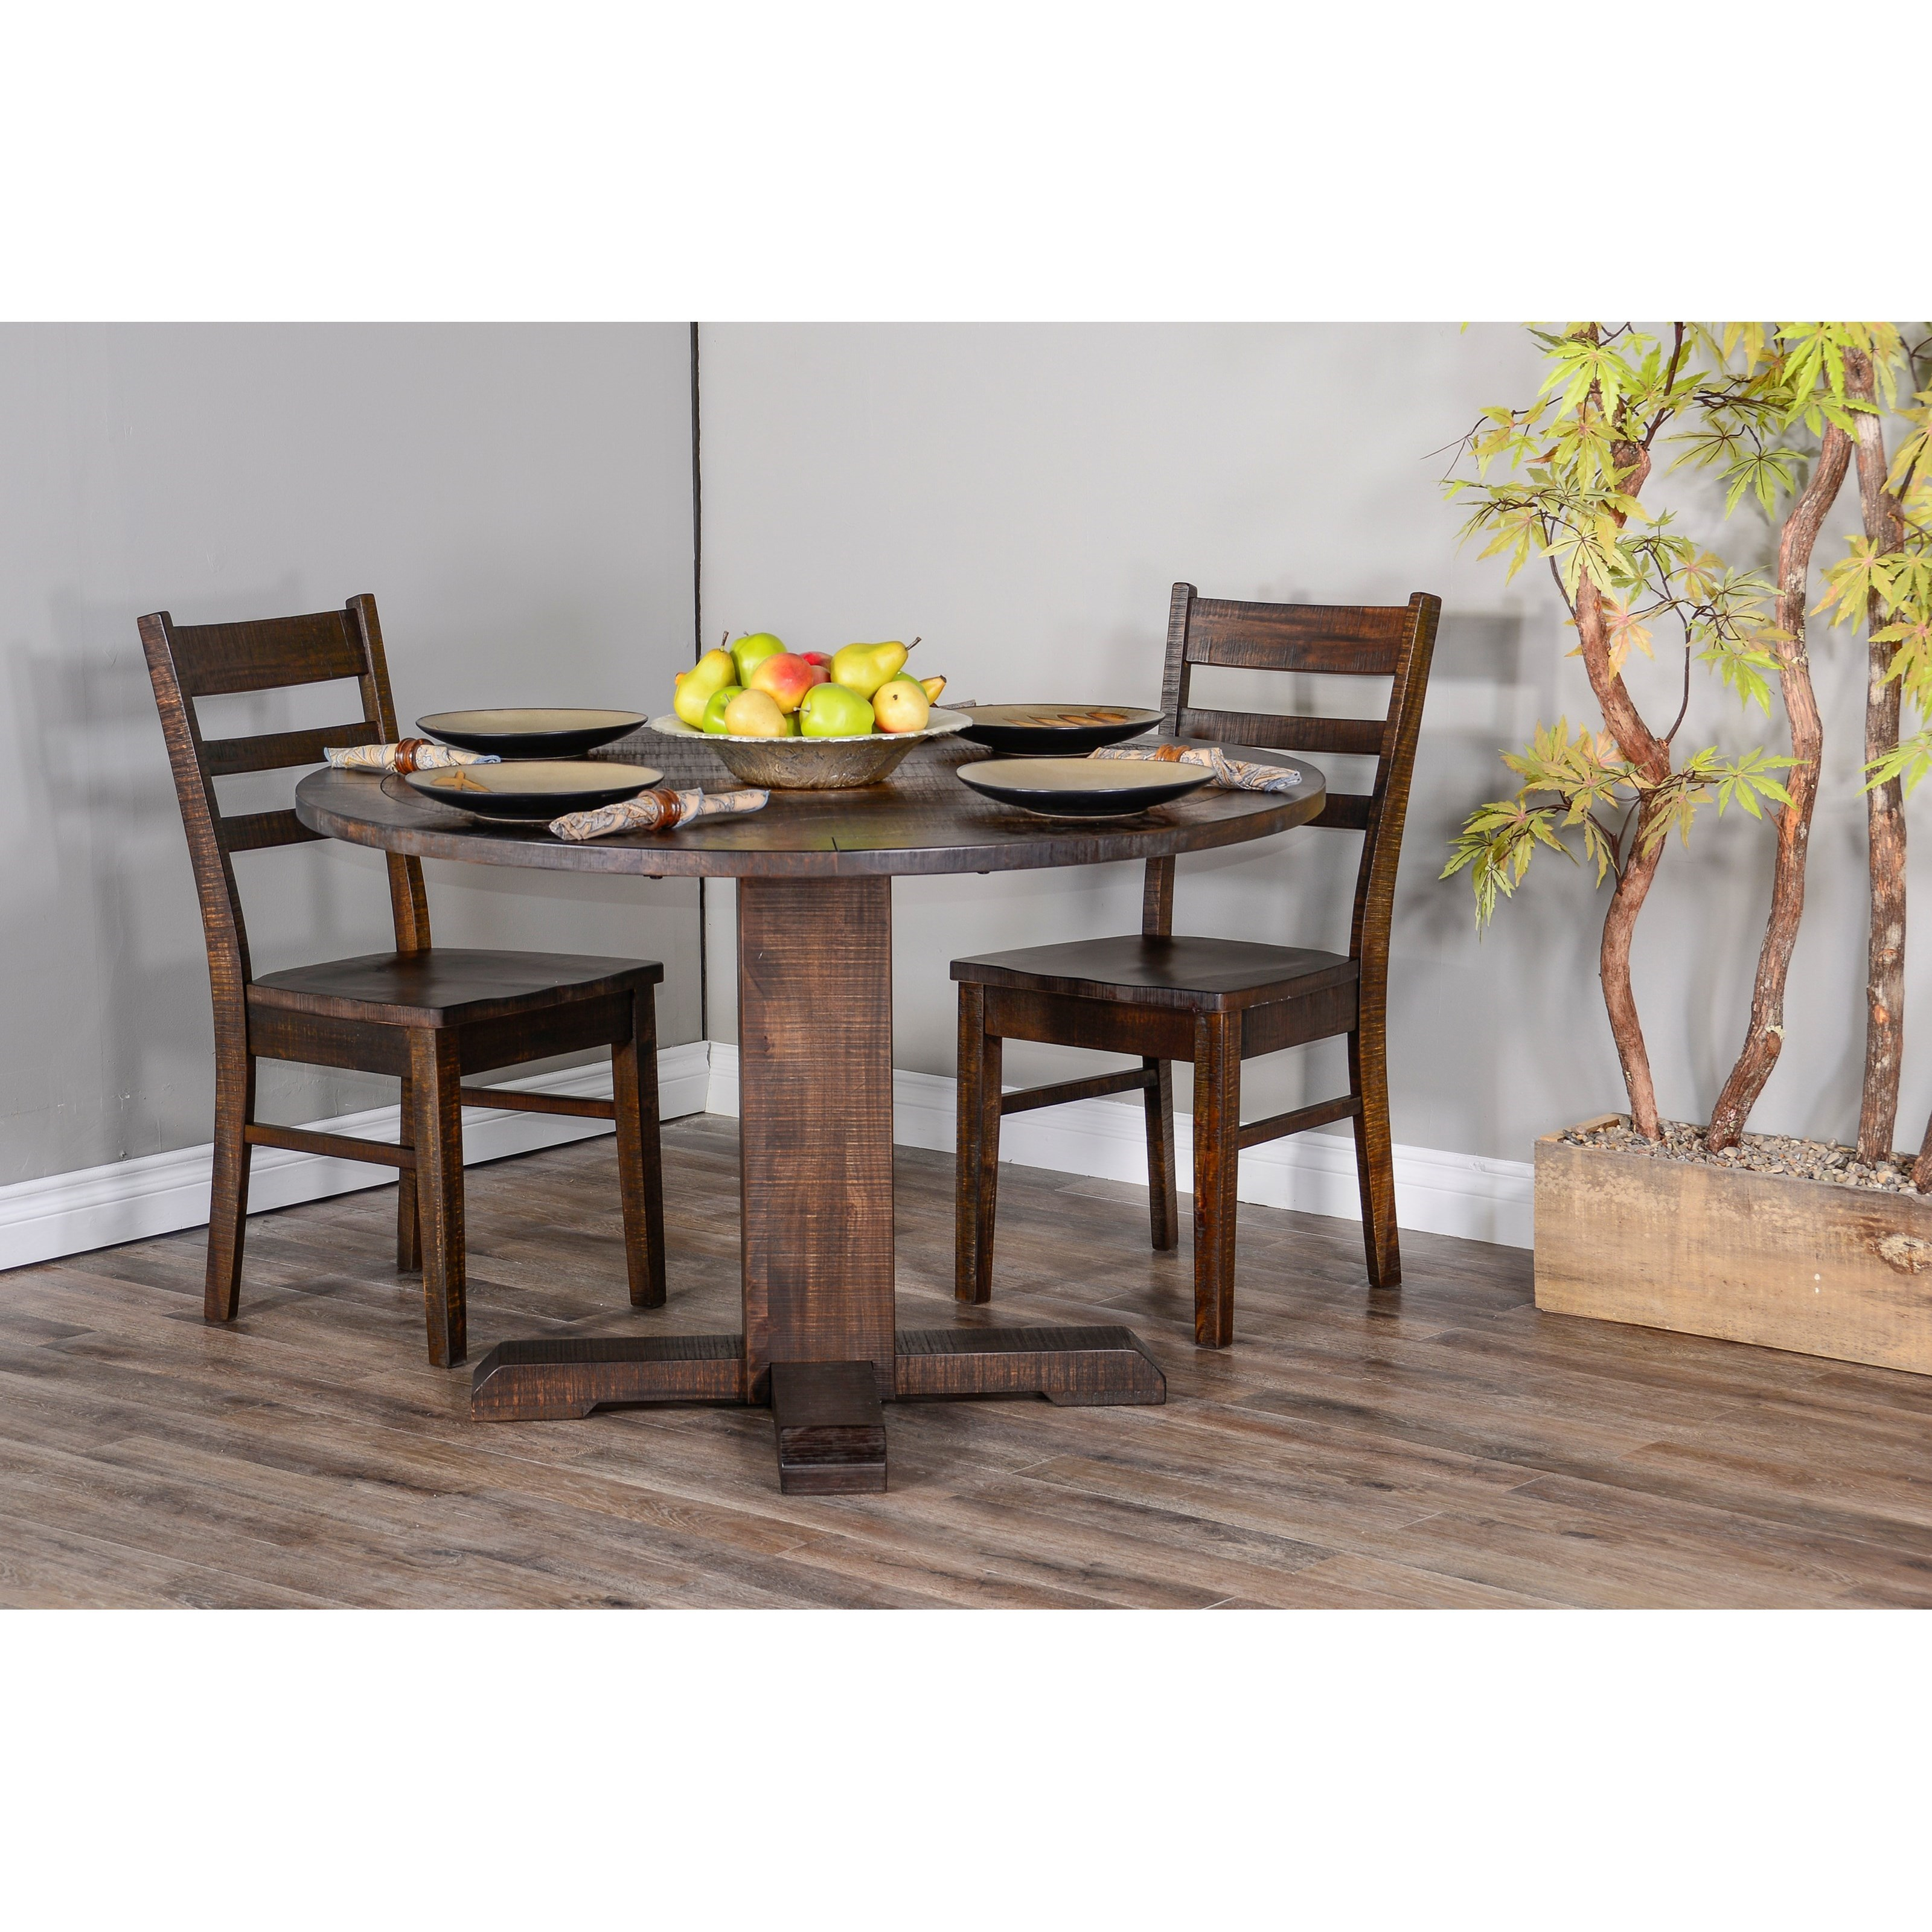 Sunny Designs Homestead 2 Table and Chair Set for Two ...